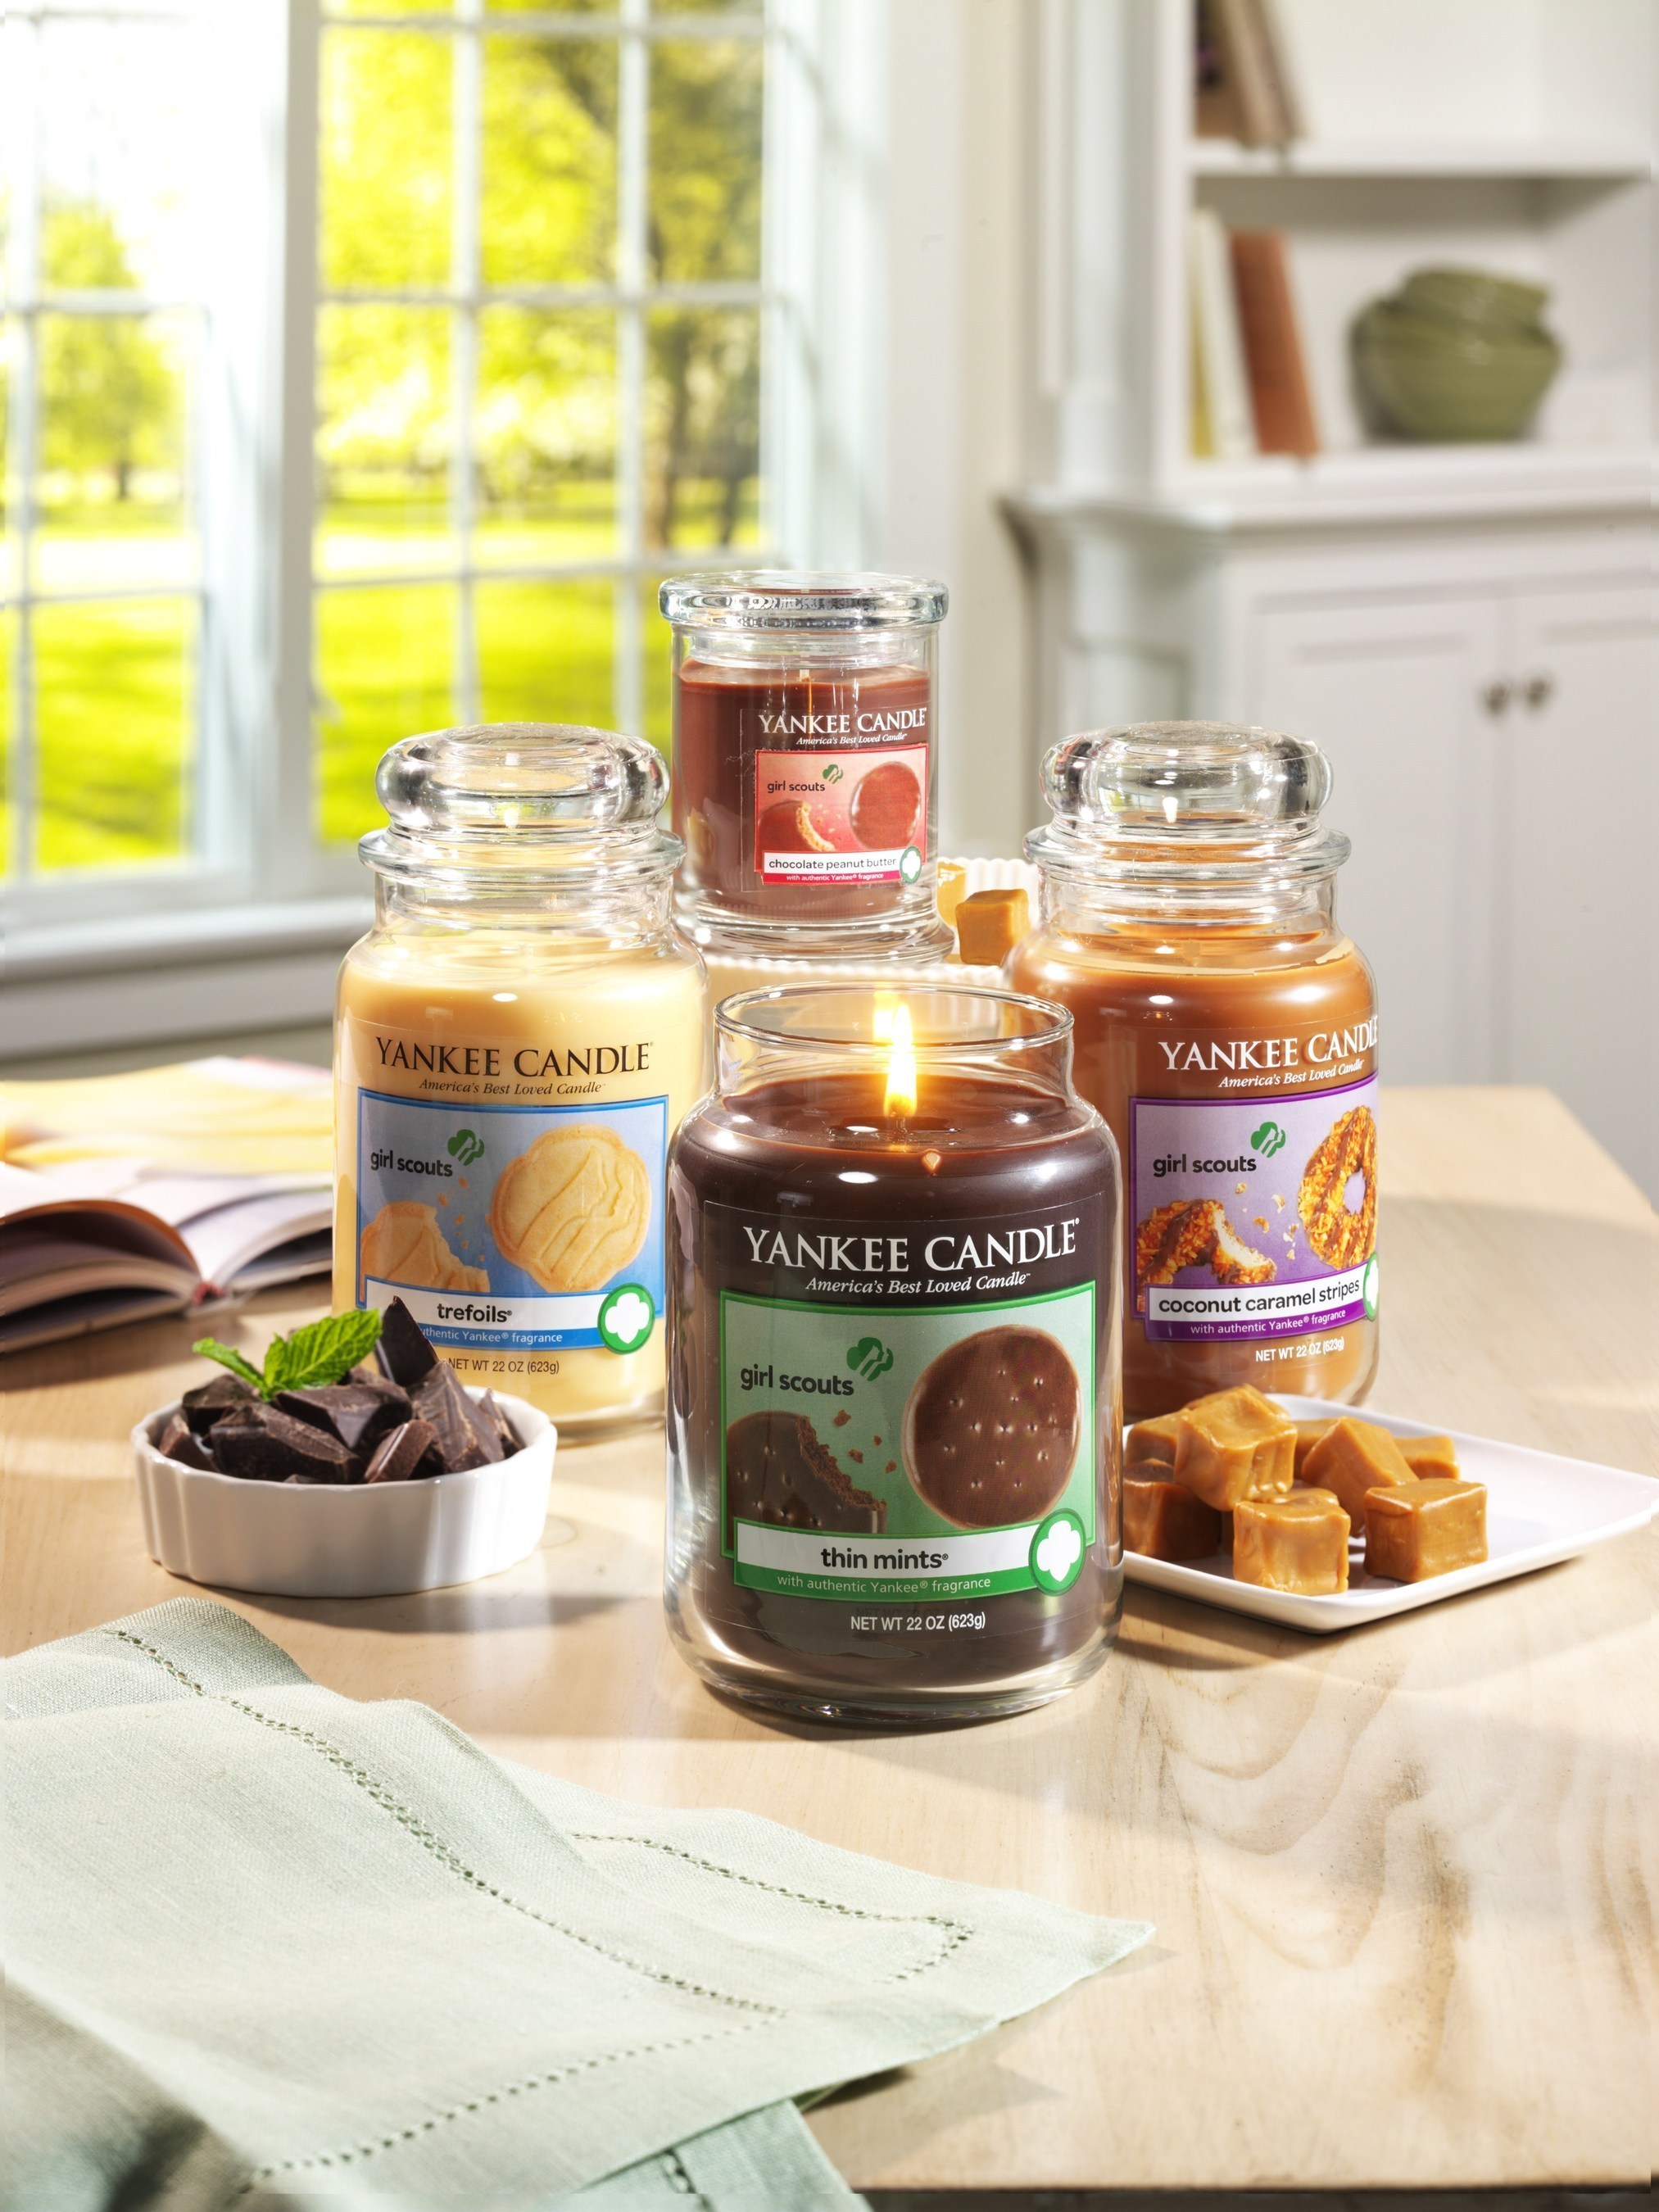 Introducing Yankee Candle's delicious new Girl Scout Cookies Limited Edition Candle Collection.